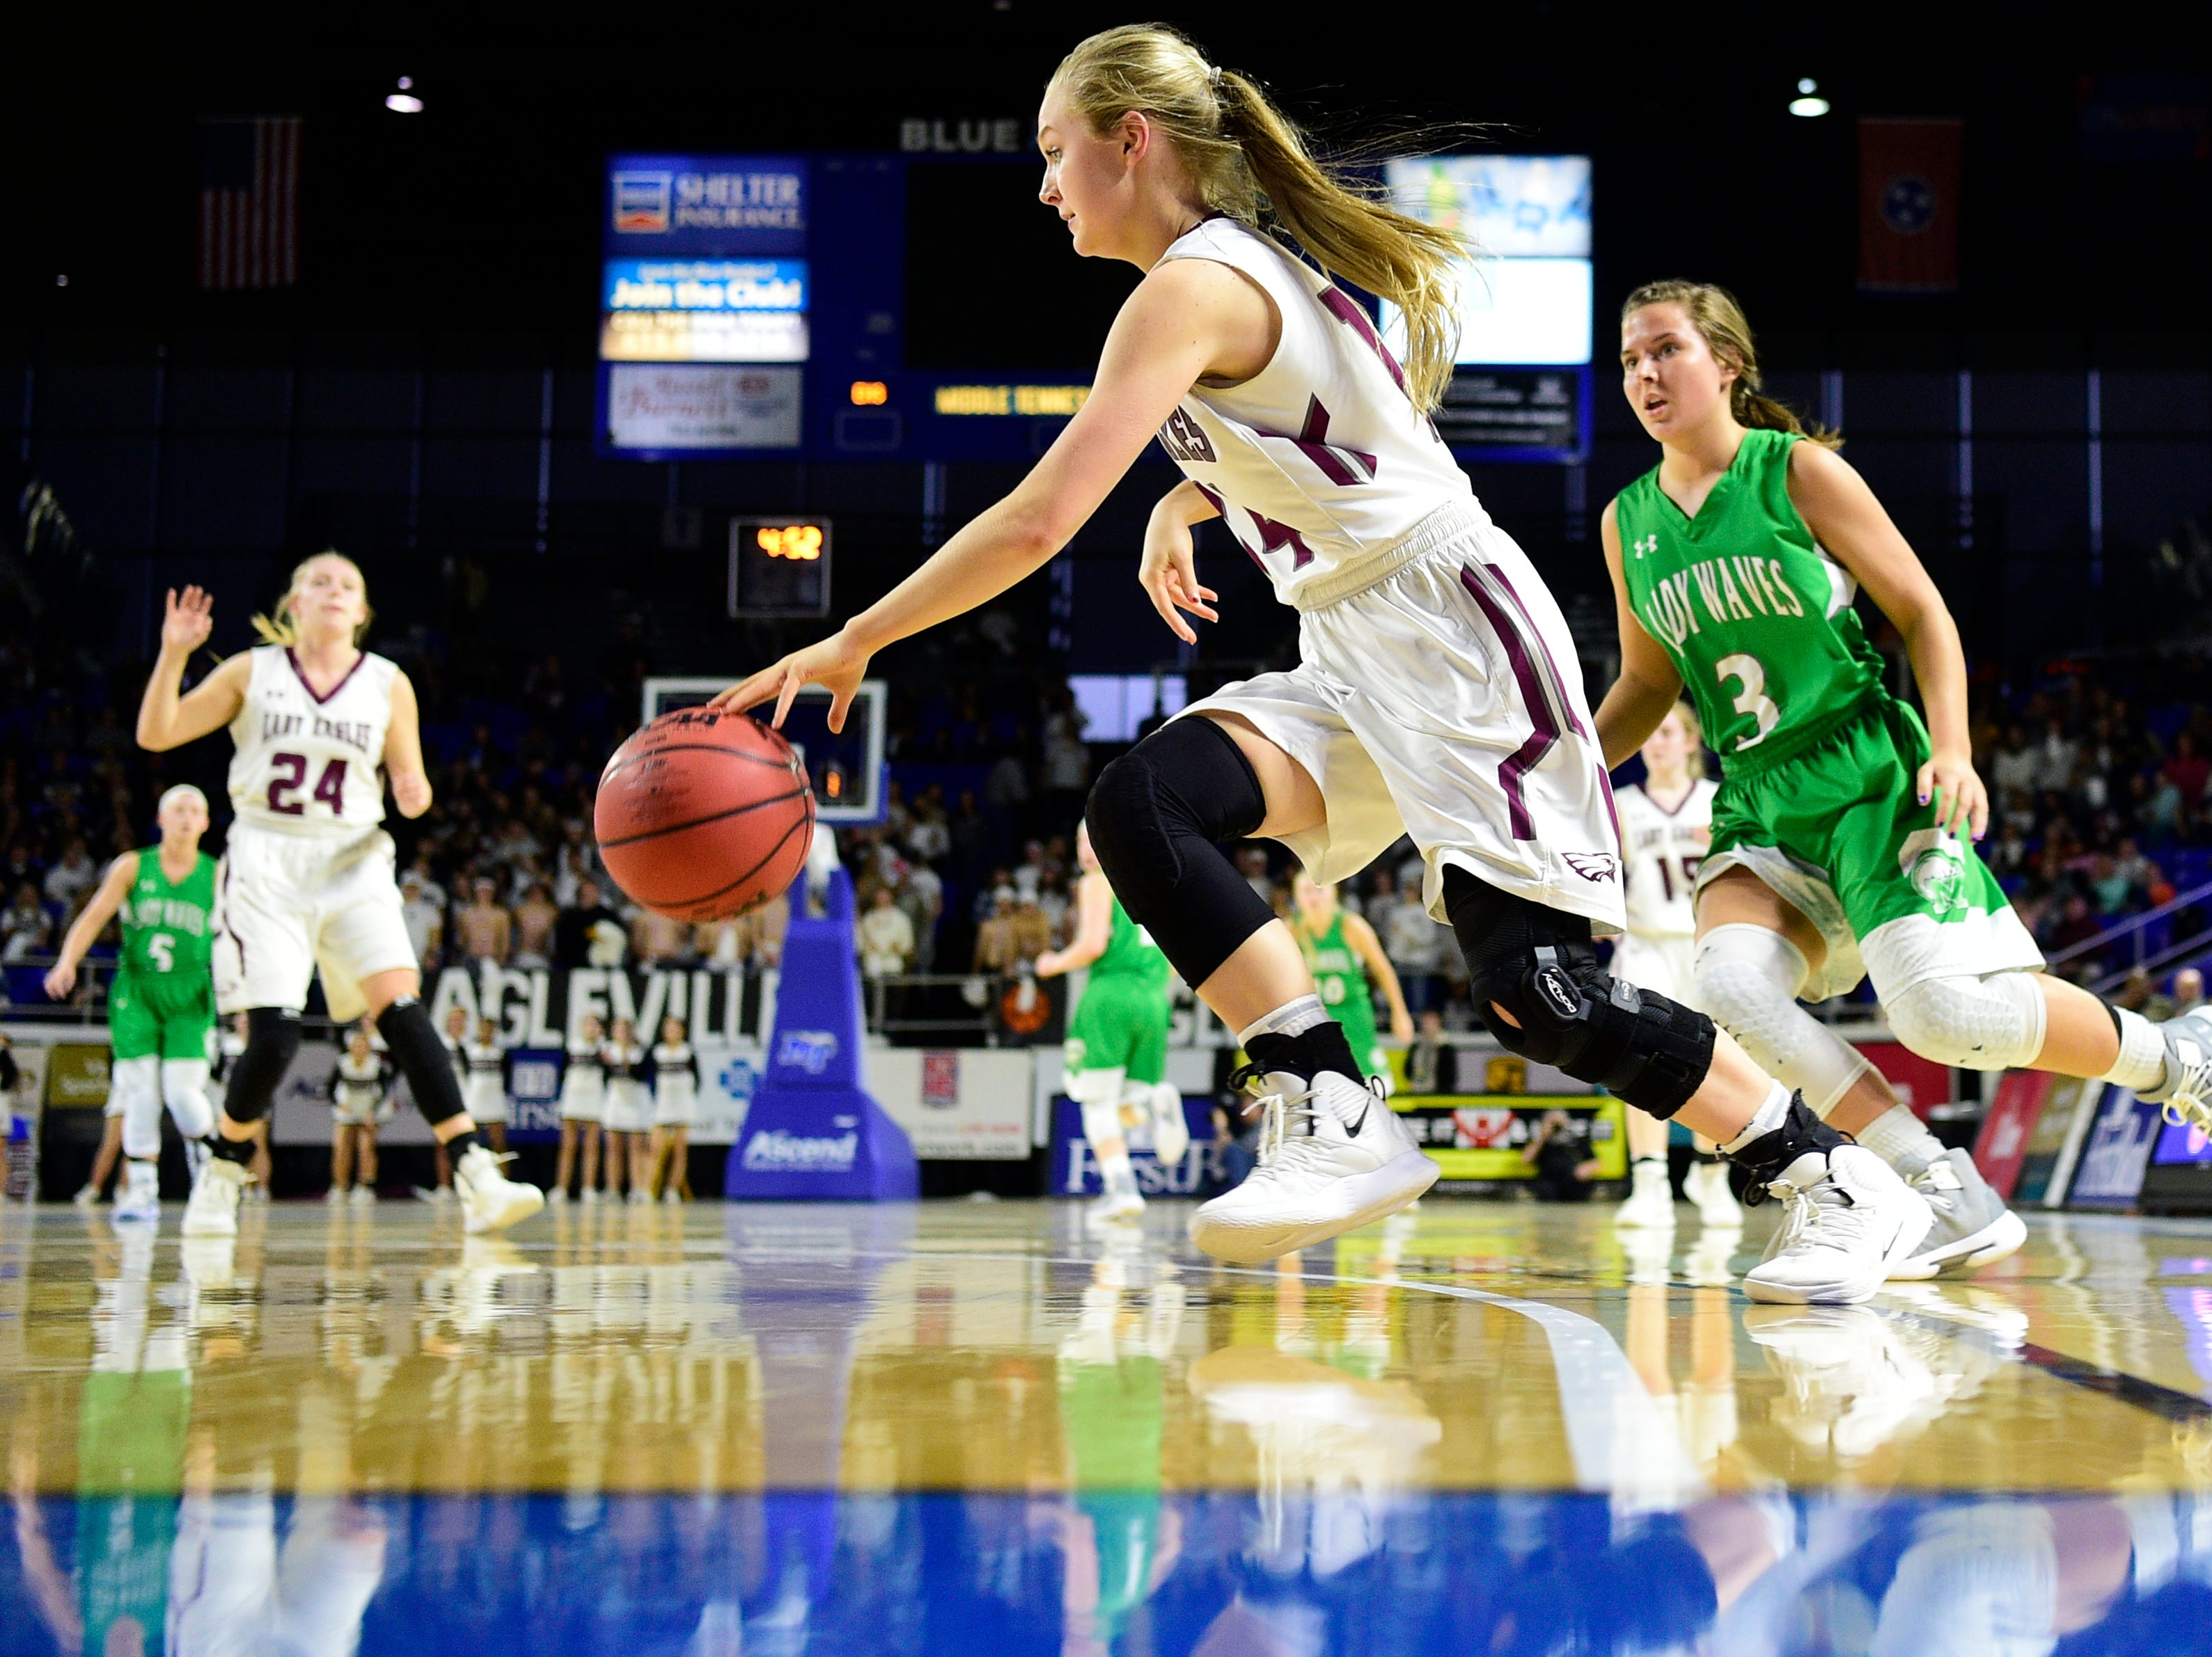 Eagleville's Anna Grace Clement (24) dribbles the ball down the court during a game between Eagleville and Midway at the TSSAA girls state tournament at the Murphy Center in Murfreesboro, Tennessee on Thursday, March 7, 2019.